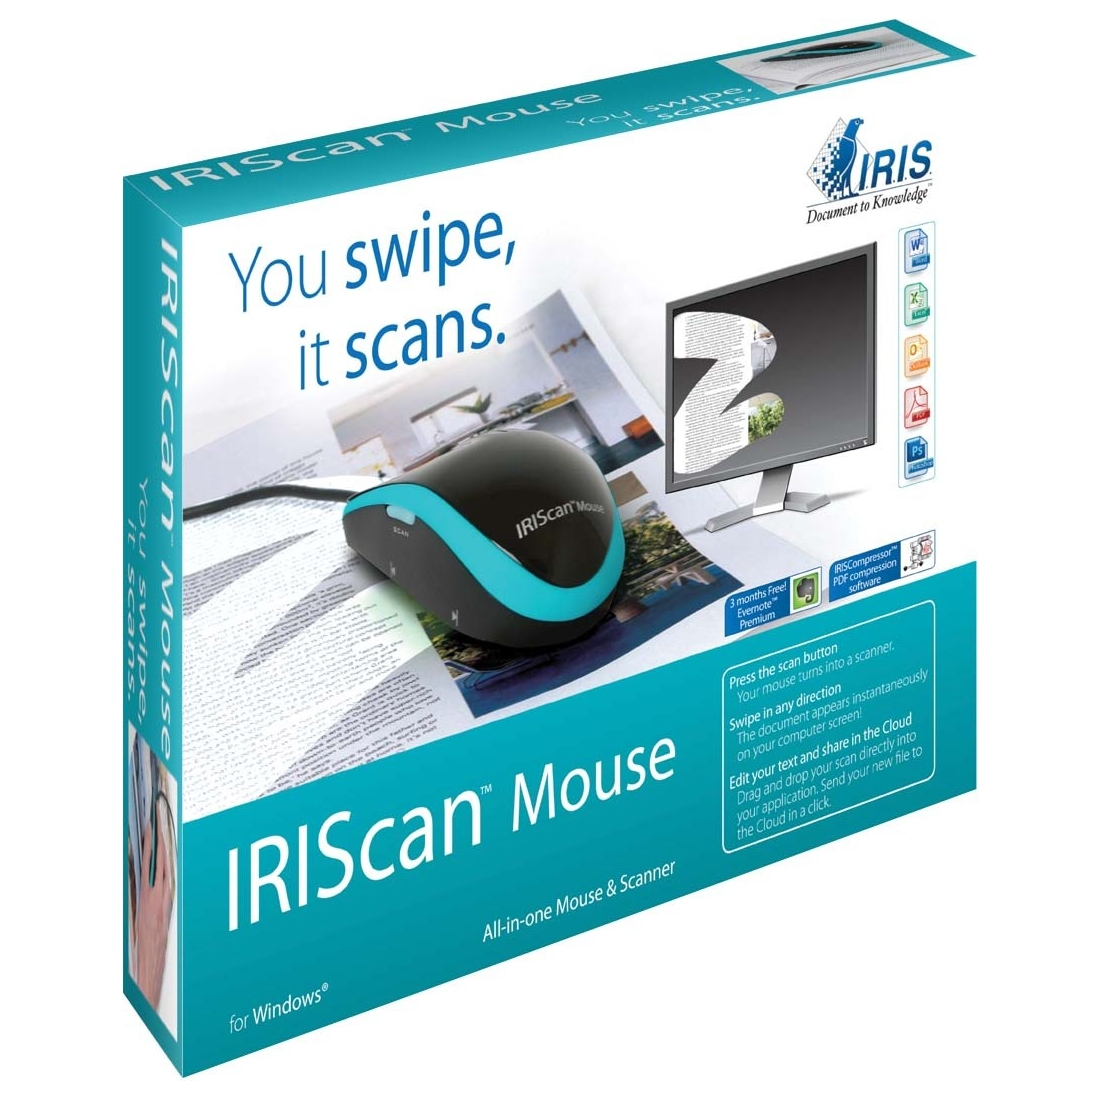 IRIS IRIScan Mouse